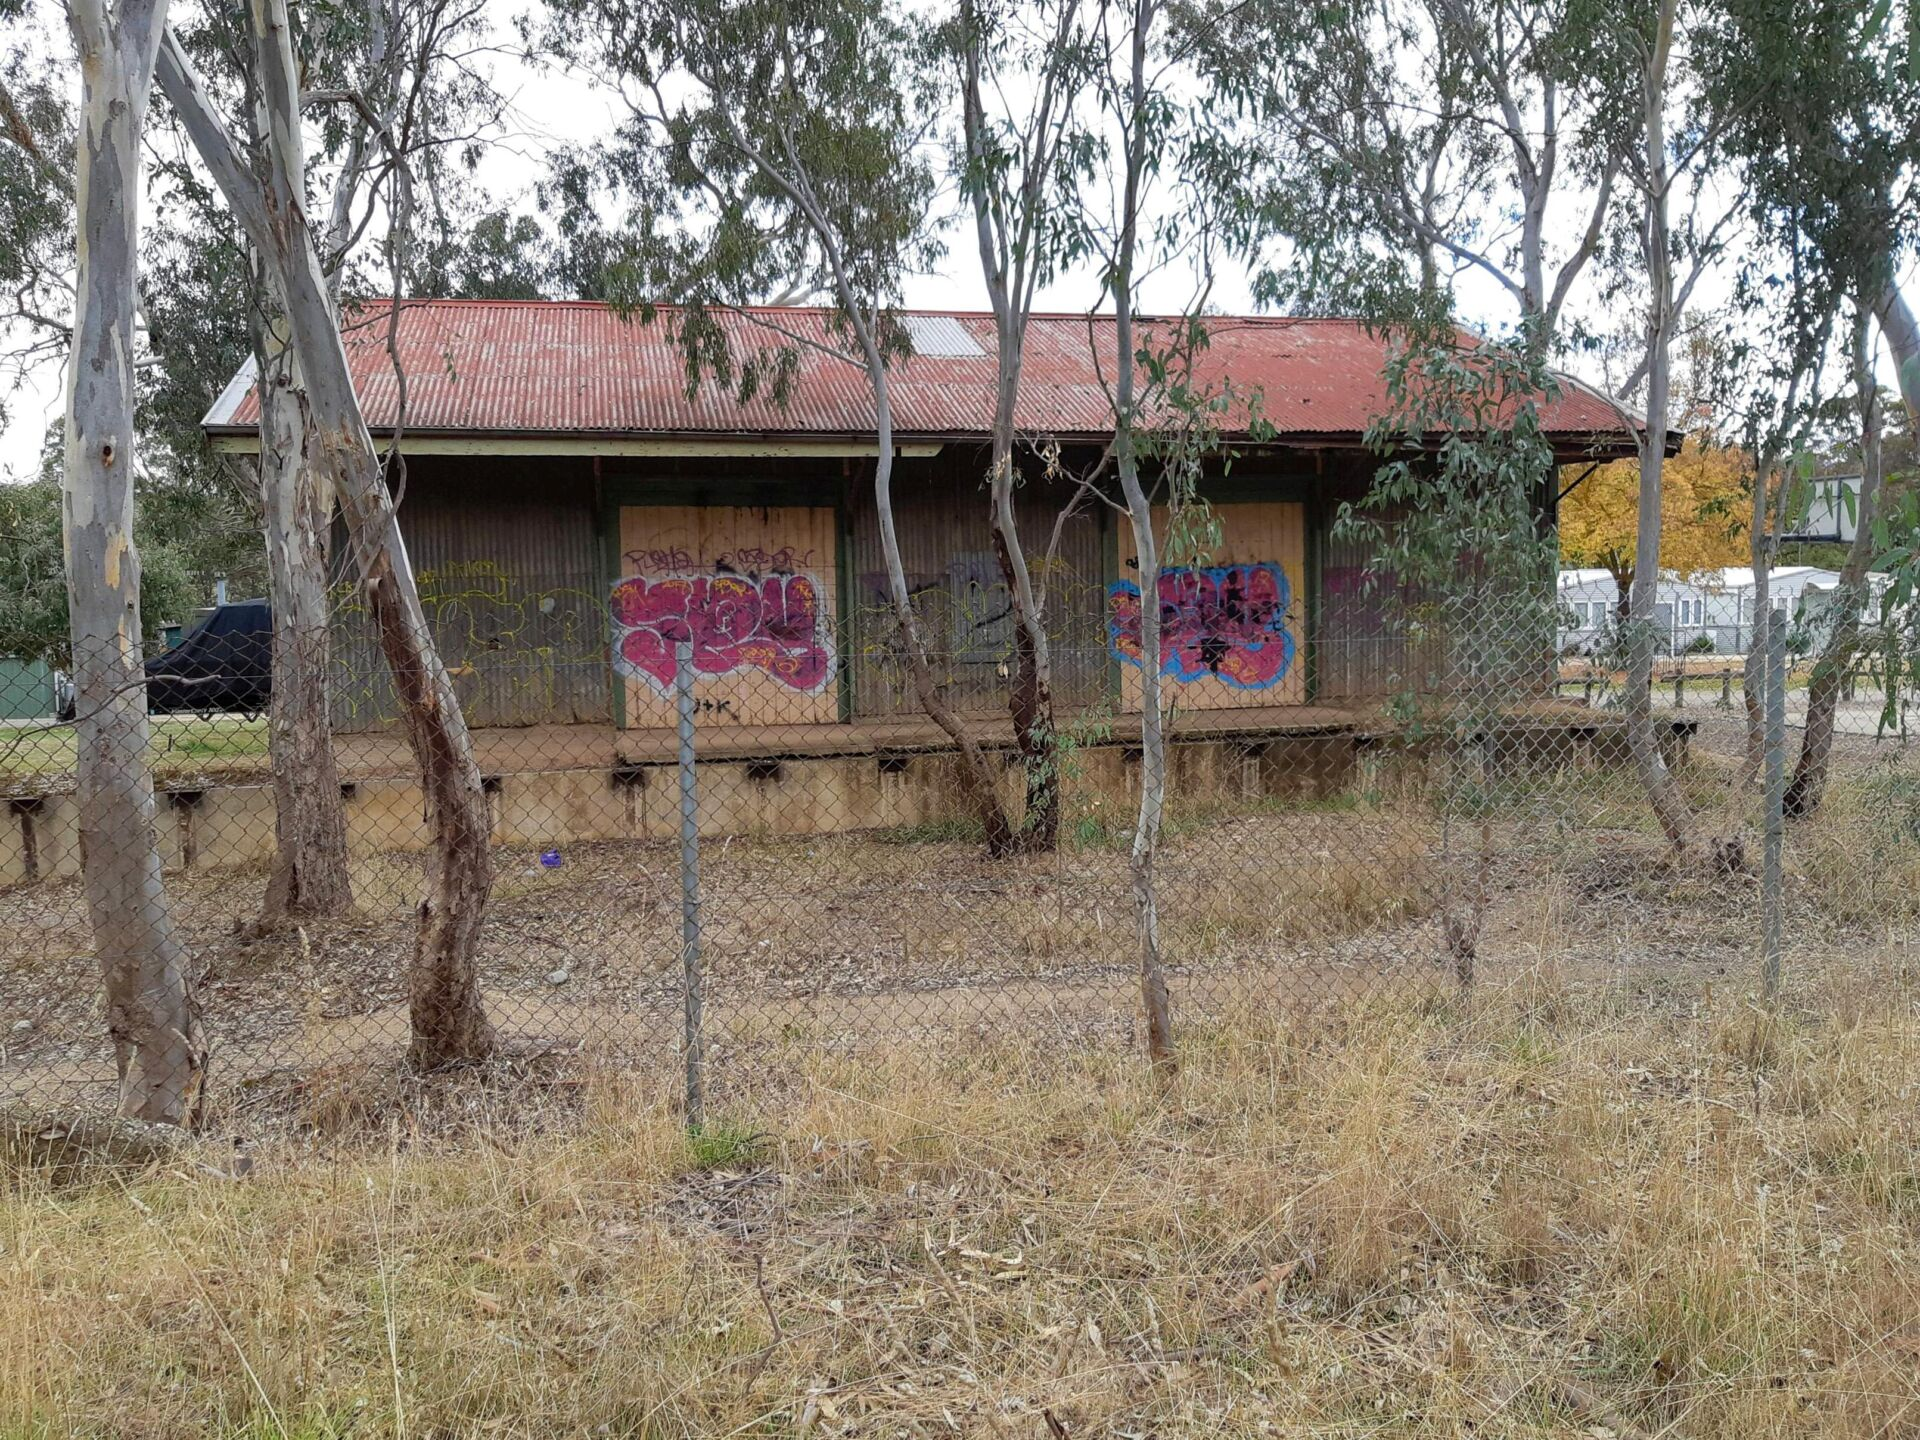 'How's the Serenity' at the Bonnie Doon good shed. Perhaps a bit too much and looking forward to restoration (2021)